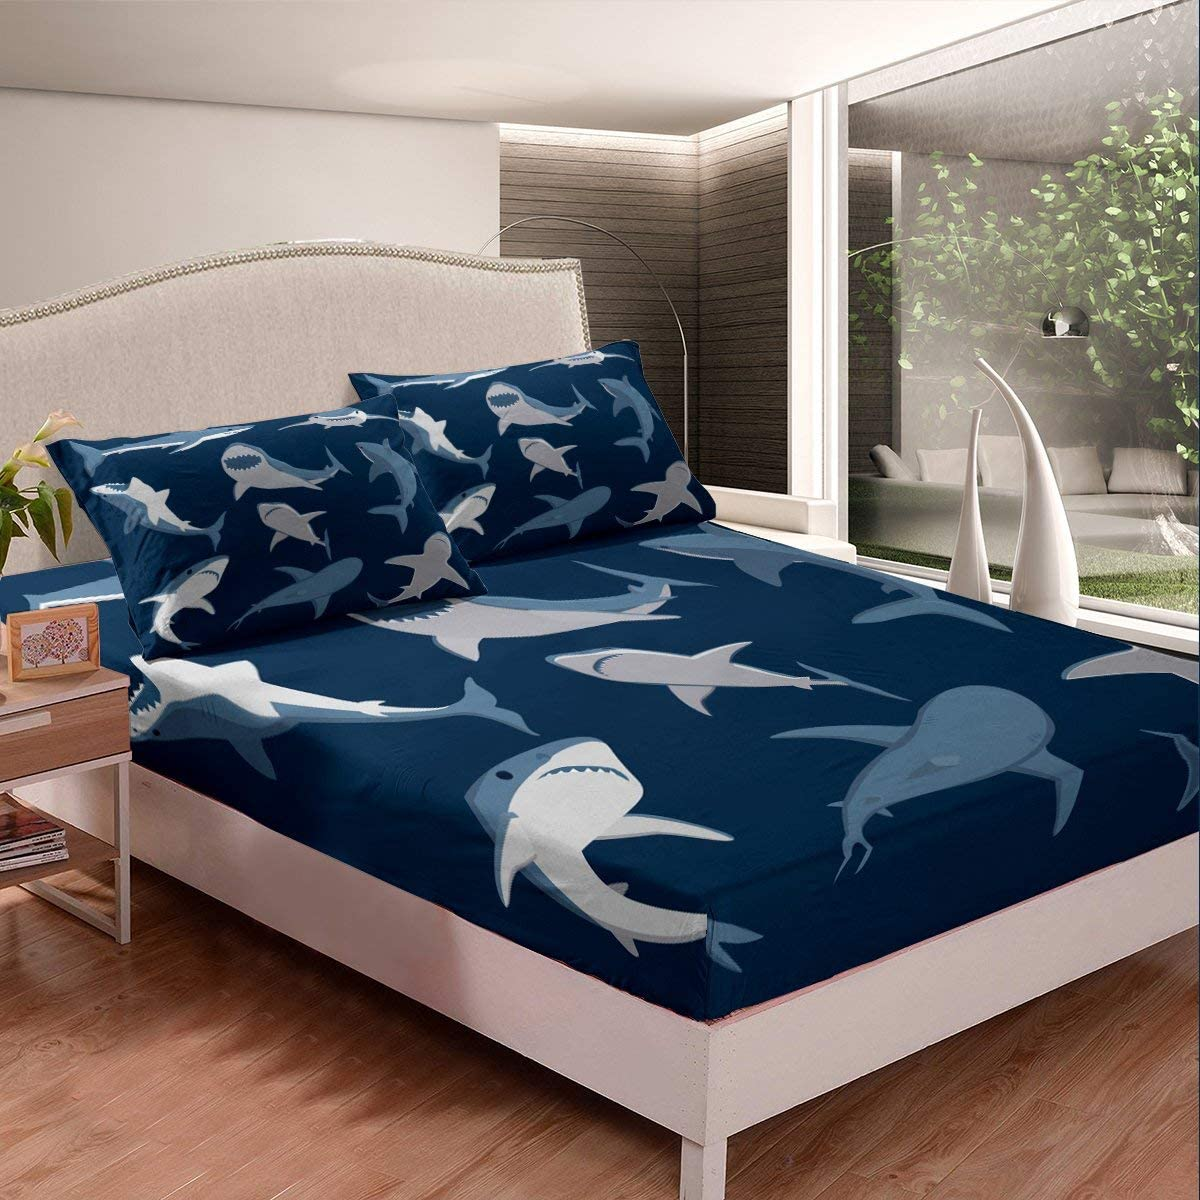 Erosebridal Boy Bedding Set, Cartoon Shark Fitted Sheet, Underwater World Oasis Ocean Top Sheet, Sea Animals Bed Cover, Navy Blue Dorm Decorative 2Pcs Twin Size, with Deep Pocket